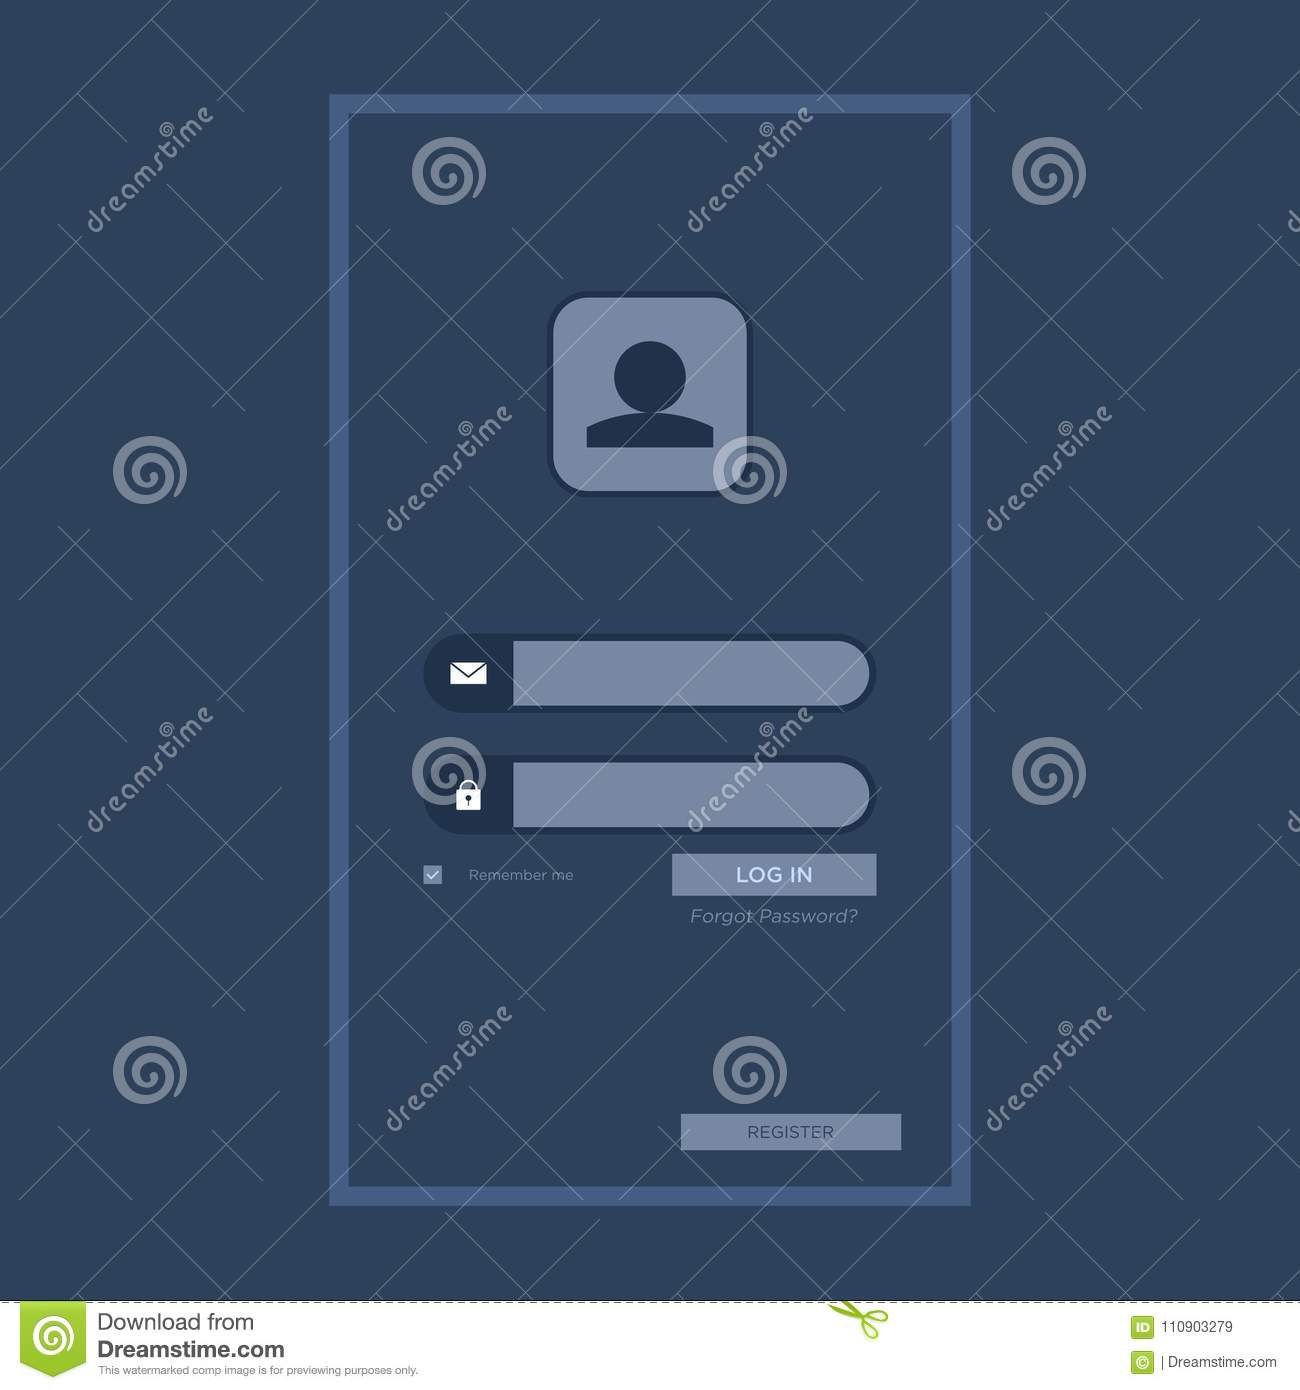 Login design template vector can be edited as needed stock user interface login design template vector can be edited as needed maxwellsz